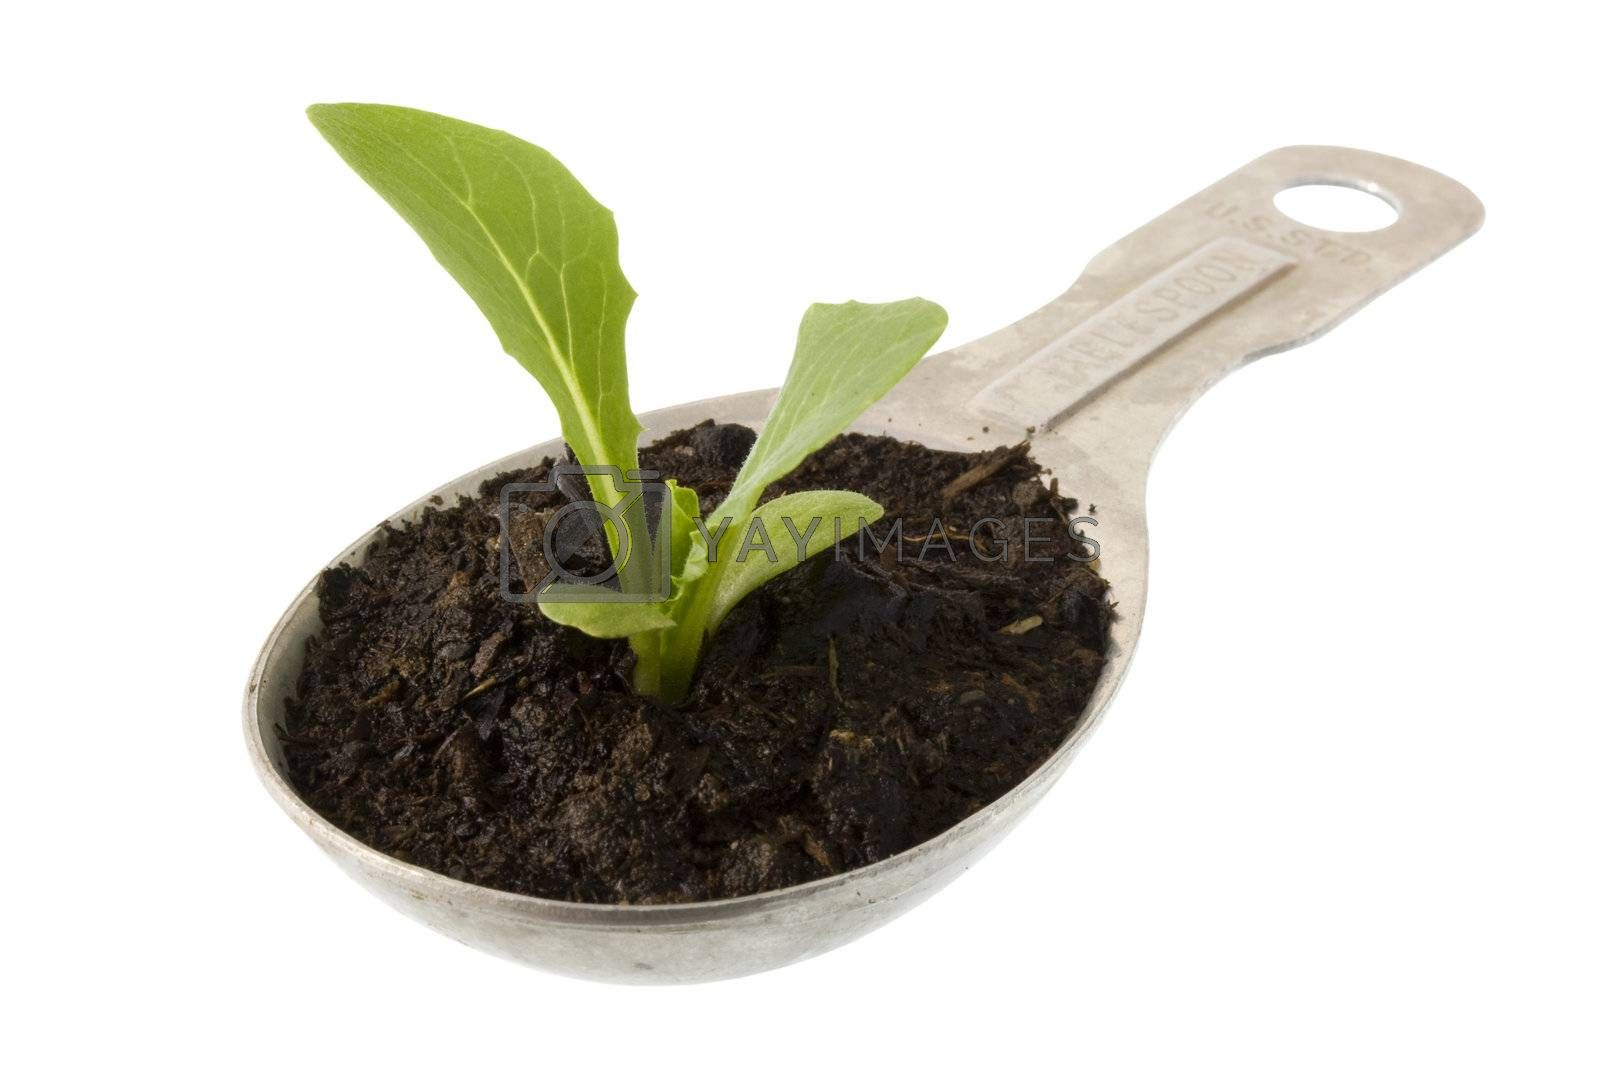 new plant of lettuce growing on a measuring tablespoon isolated on white, clipping path included